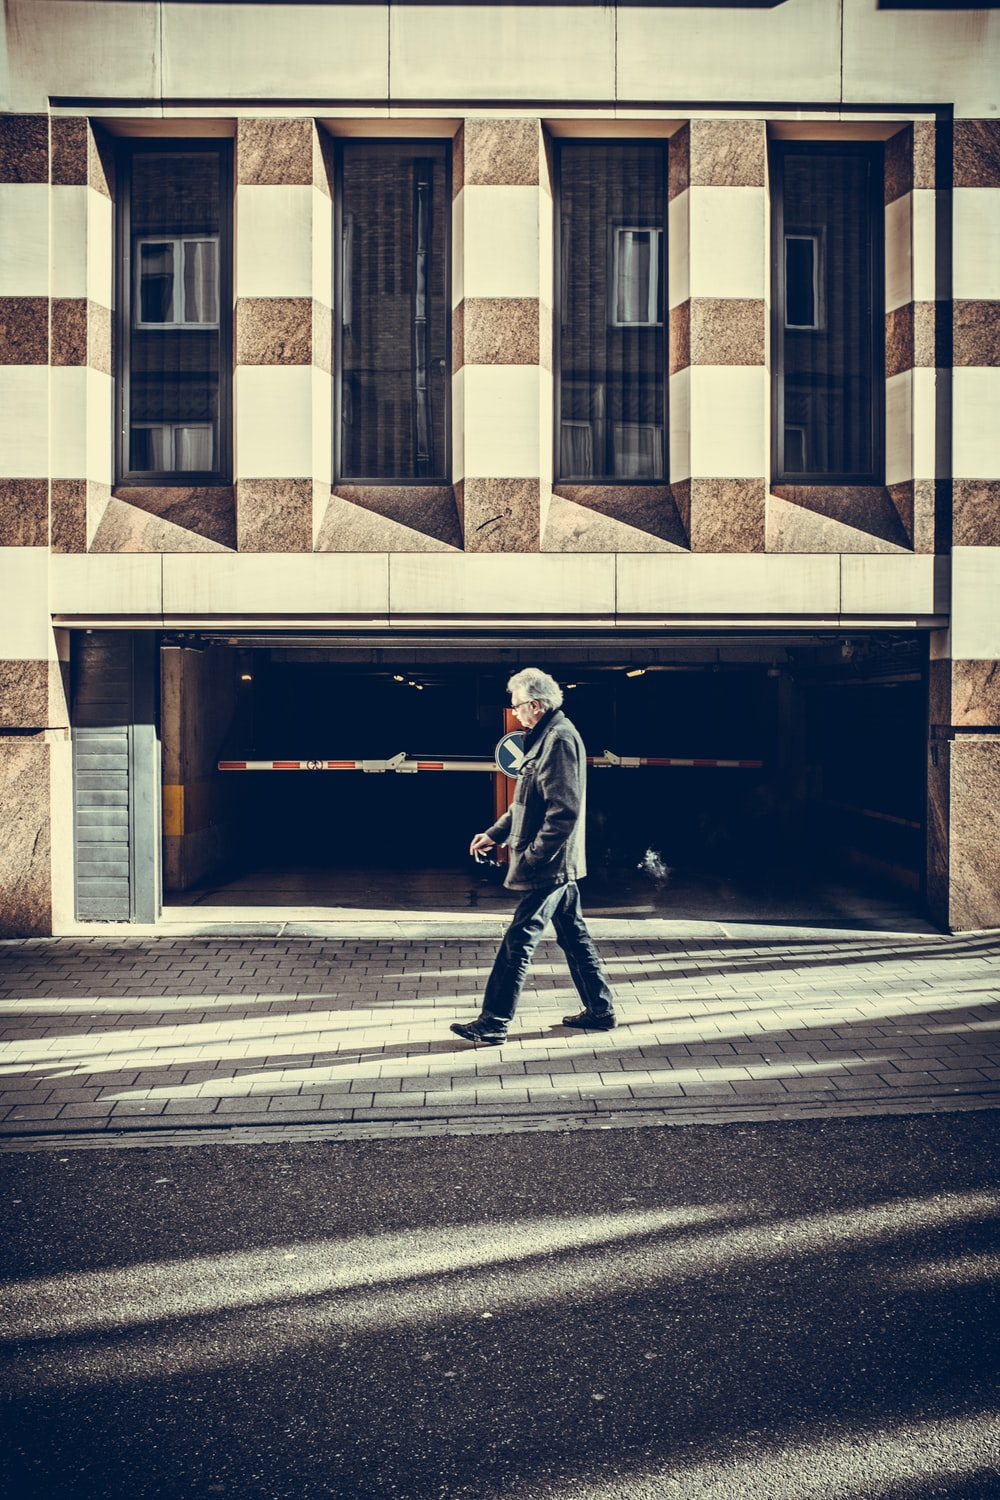 man walking on pavement in front of concrete structure